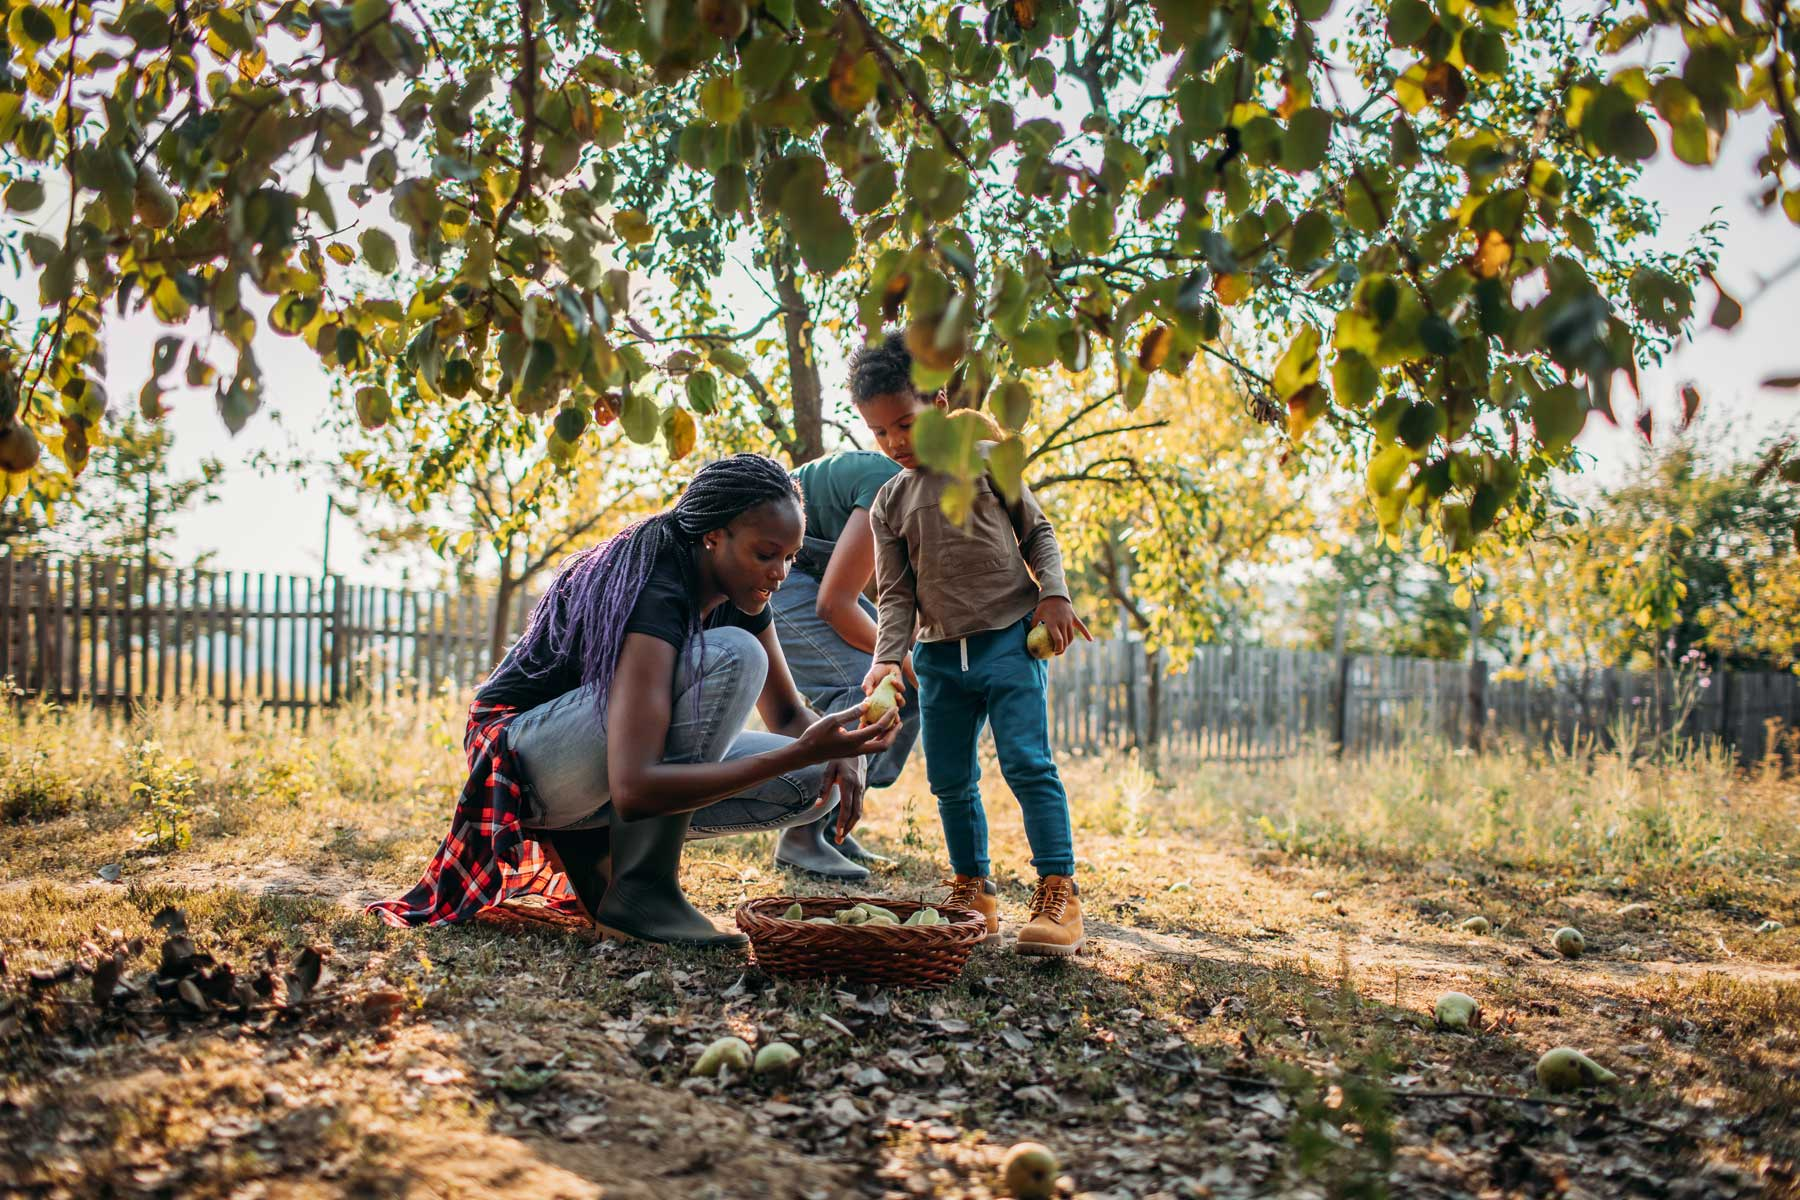 Black Woman And Her Son Picking Apples In Orchard An Autumn